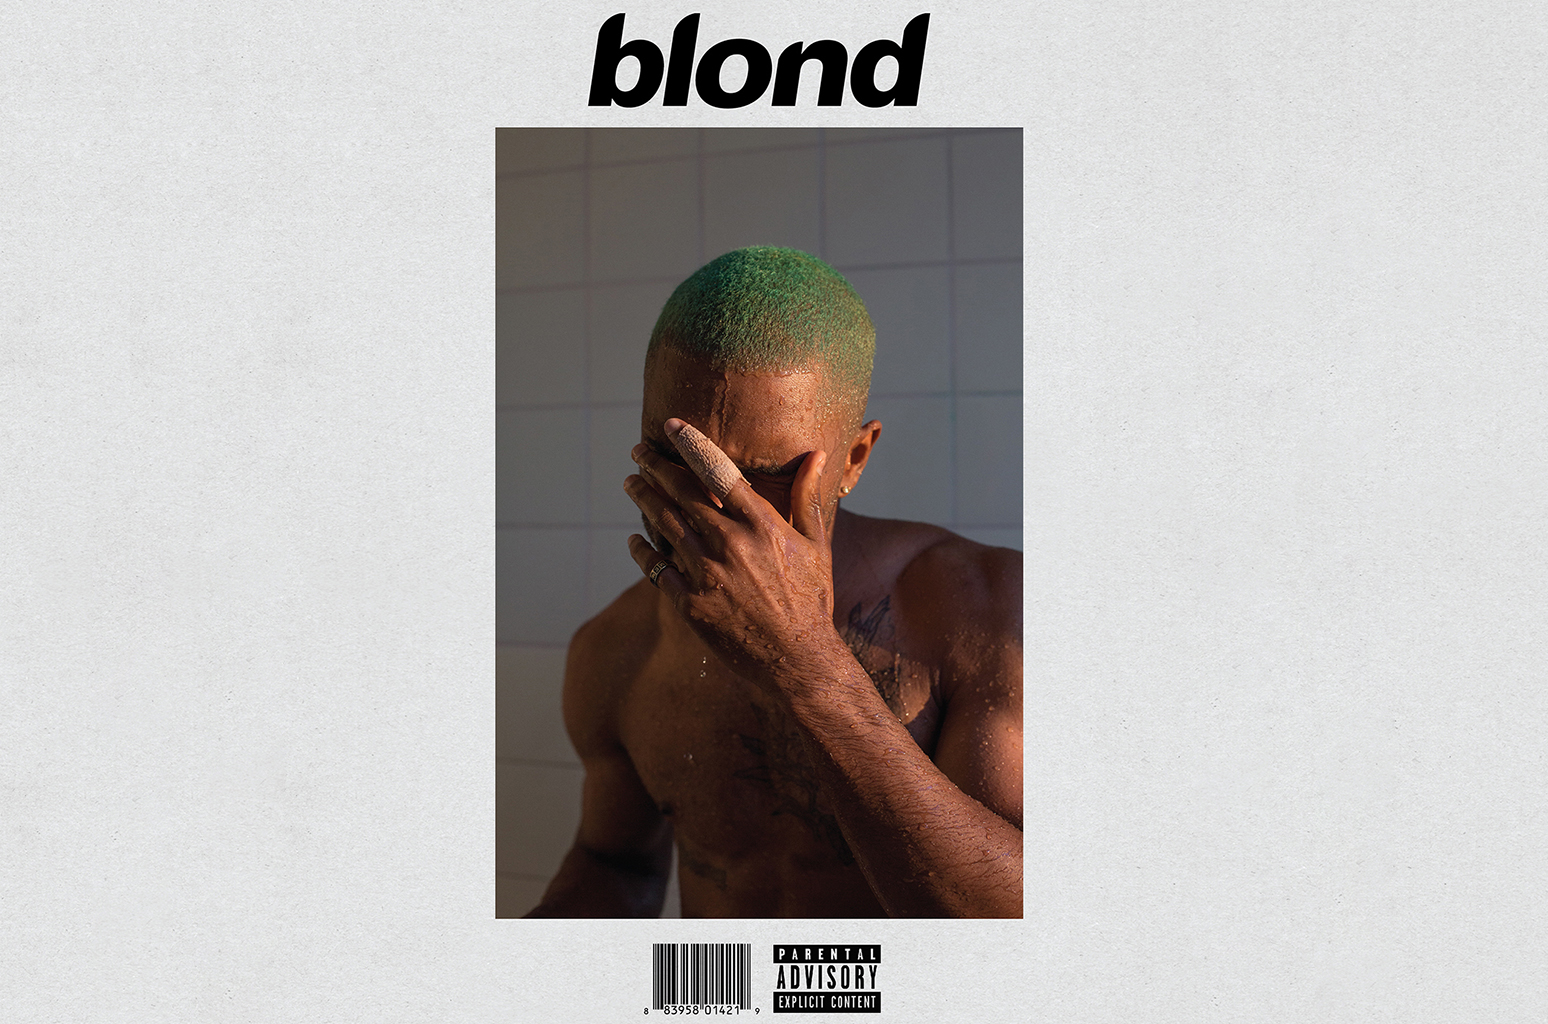 frank-ocean-blond-2016-billboard-1548.jpg